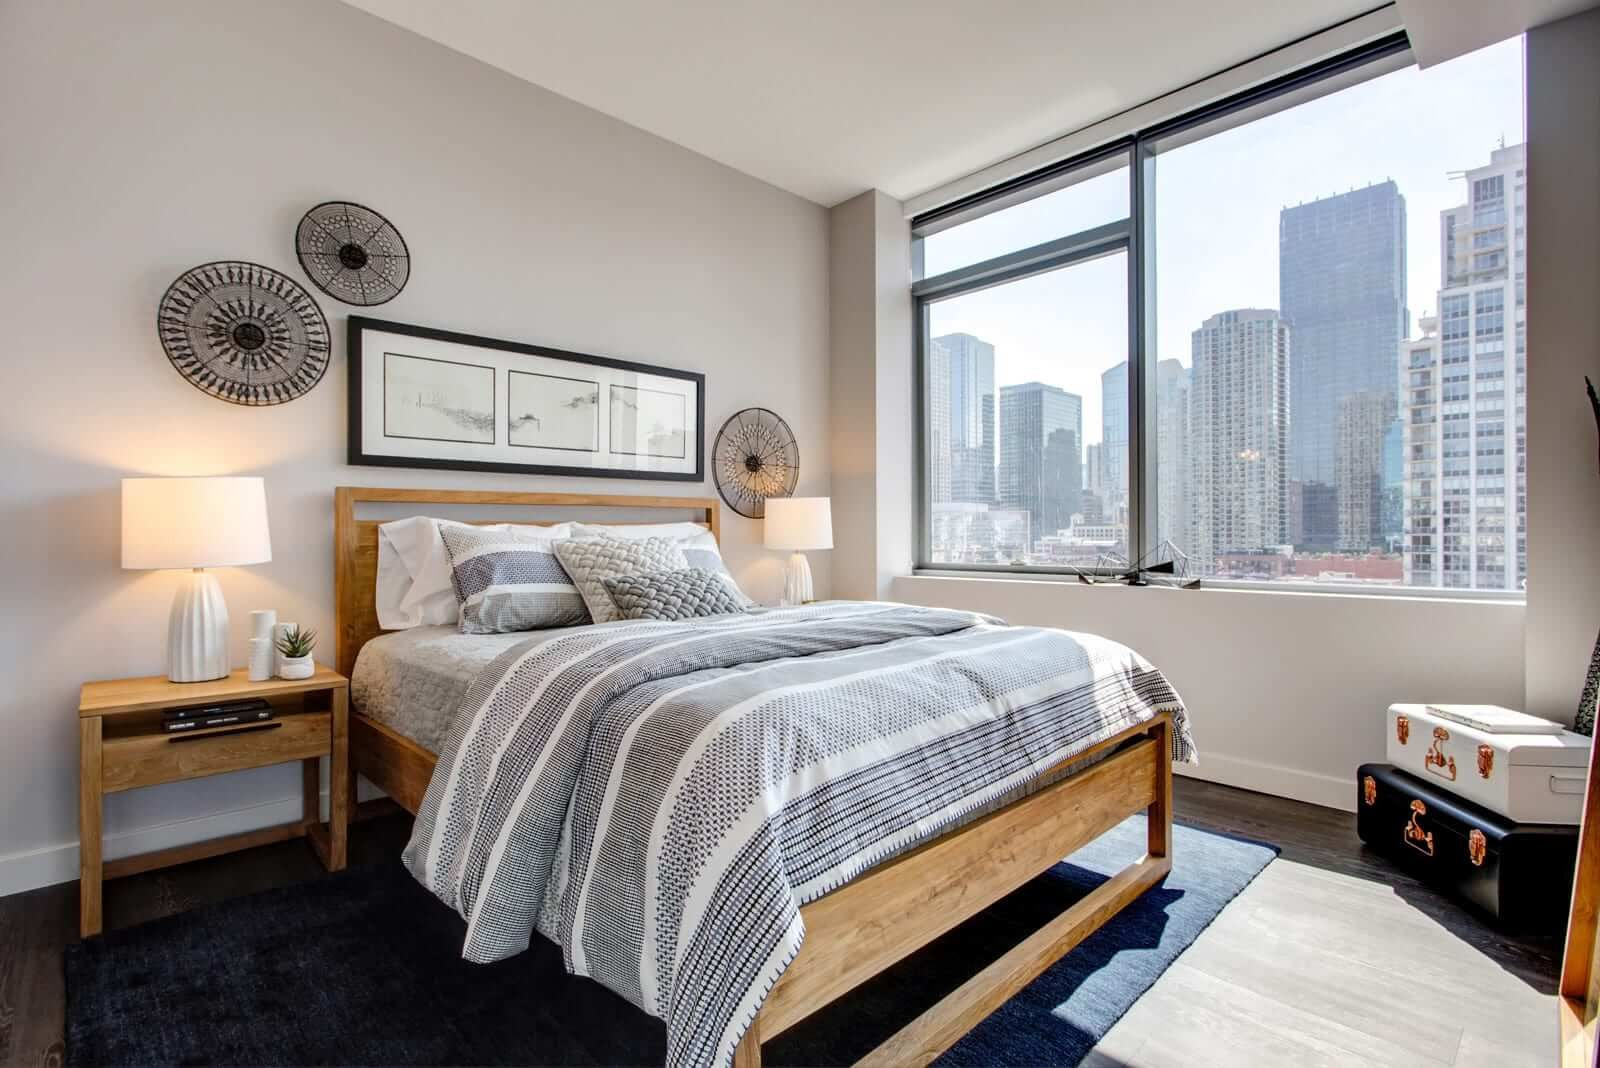 Best apartment search site in Chicago - 640 North Wells